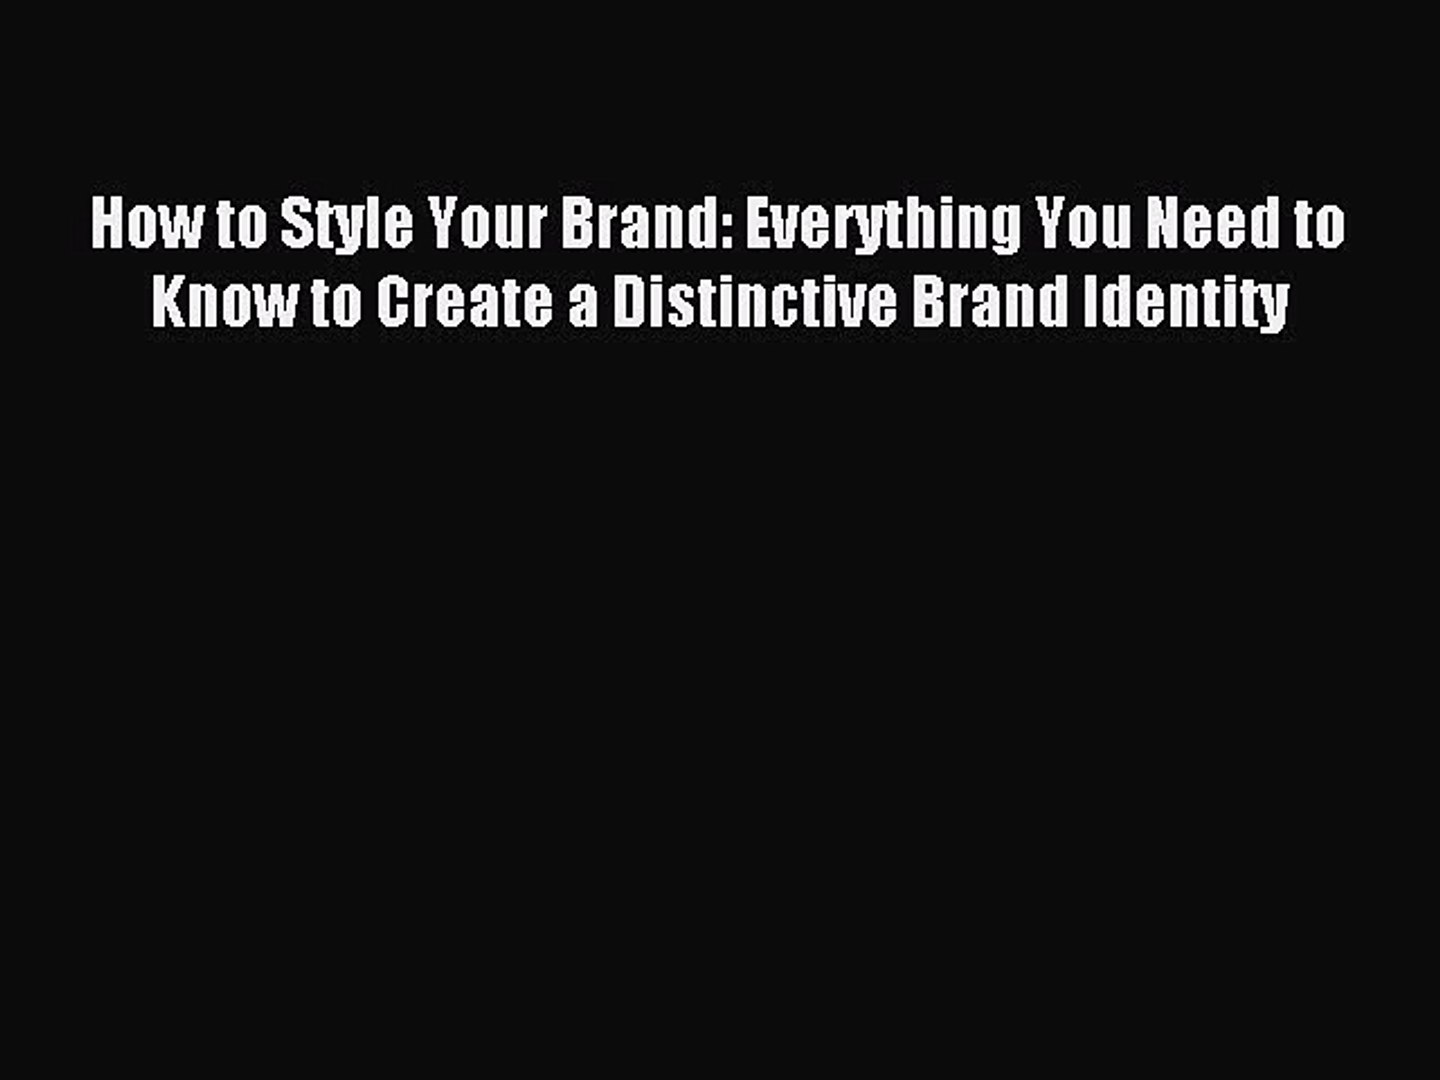 Read How to Style Your Brand: Everything You Need to Know to Create a Distinctive Brand Identity